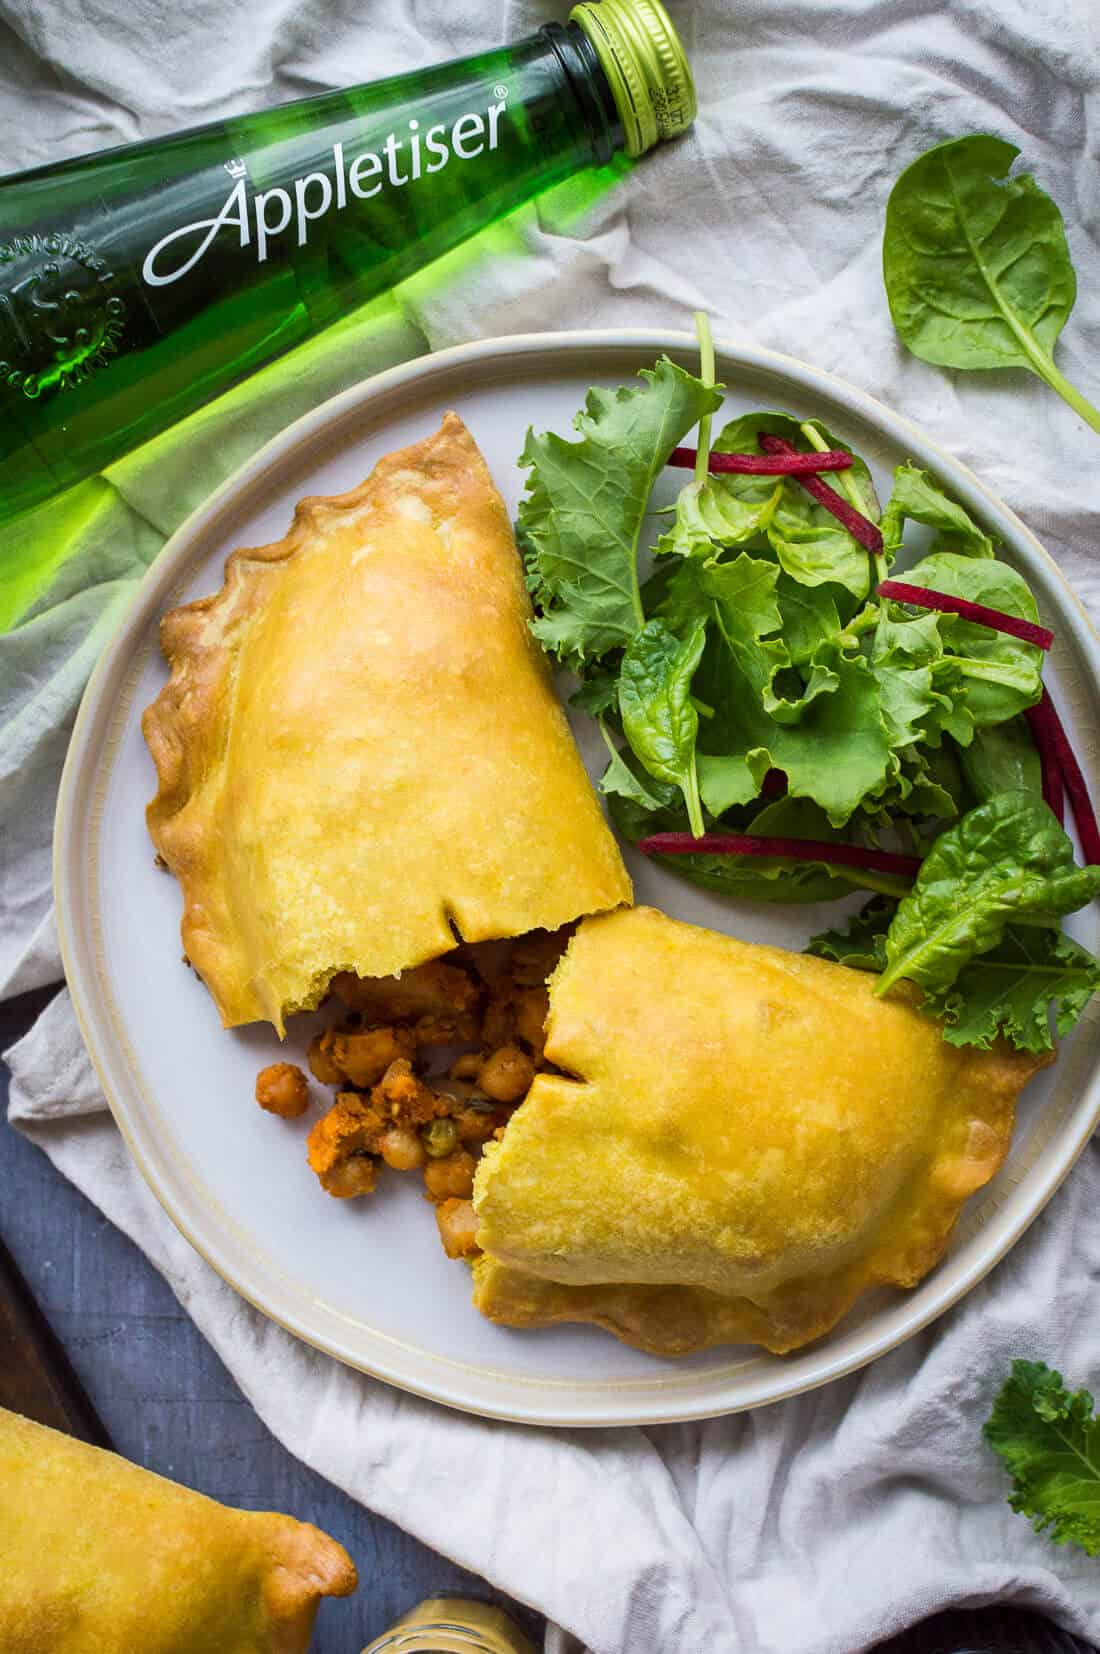 Close up of a vegan curried vegetable pasty with salad and a bottle of Appletiser